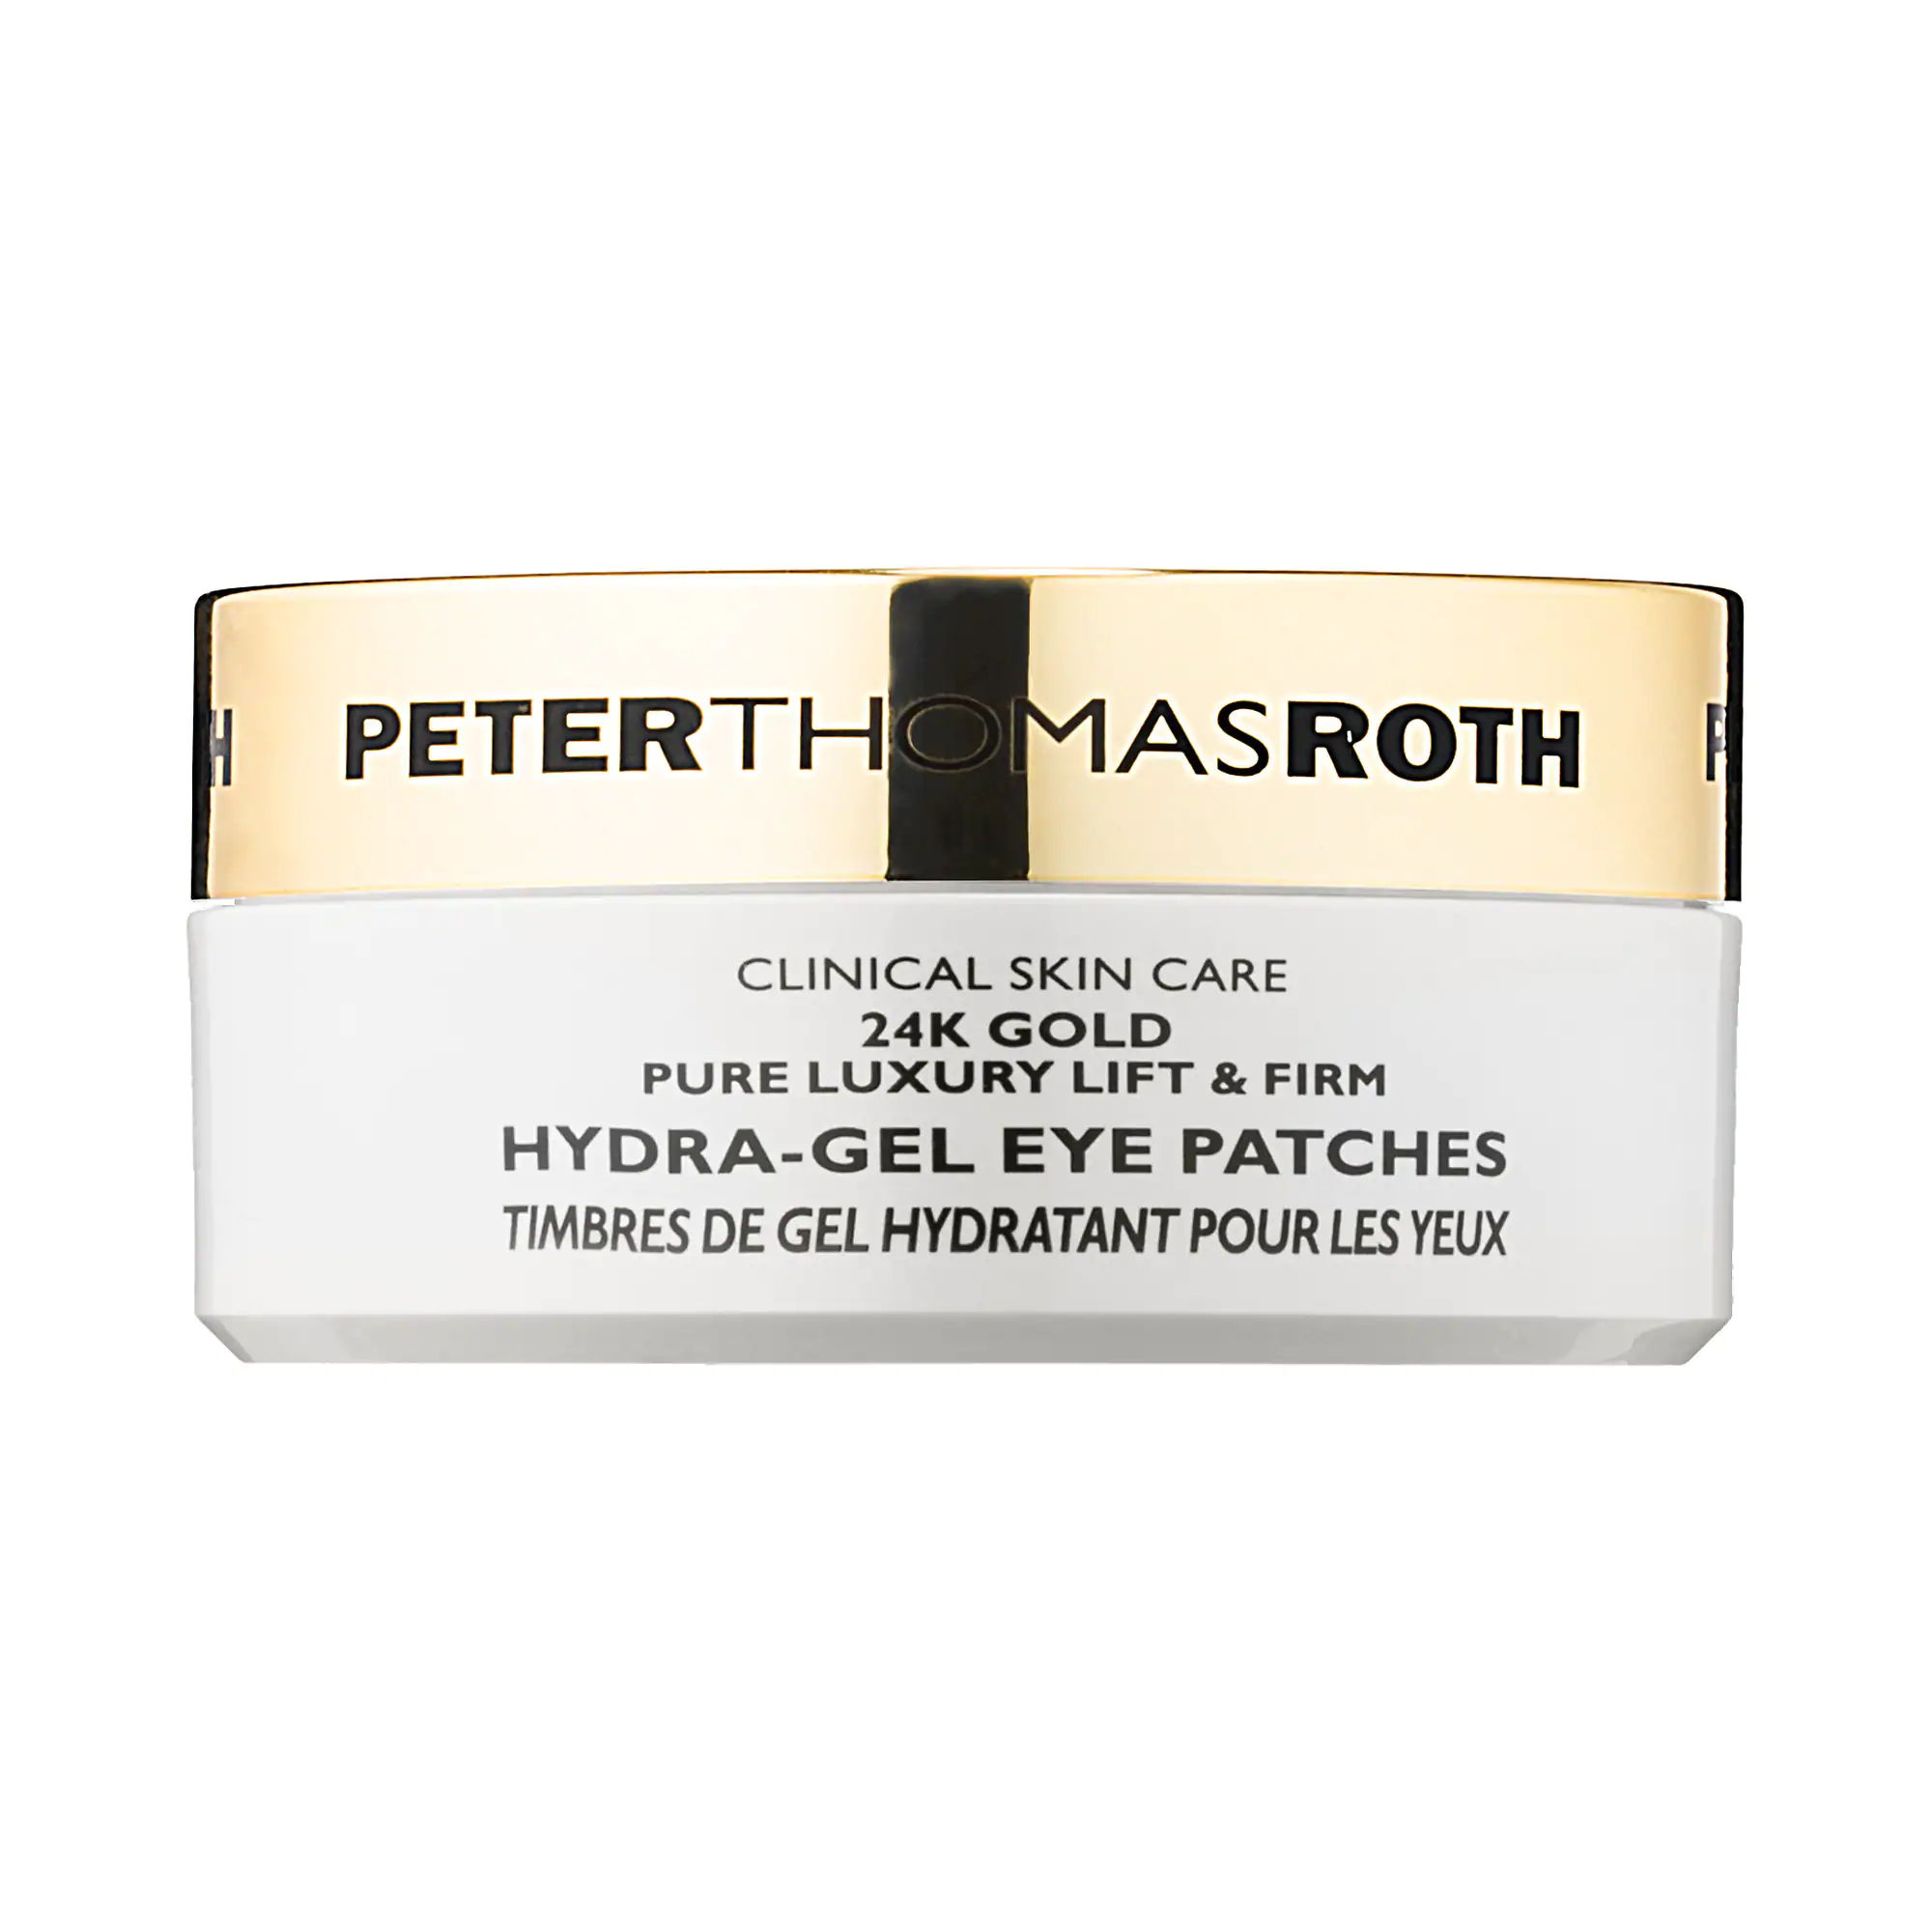 Peter Thomas Roth-24K Gold Pure Luxury Lift & Firm Hydra-Gel Eye Patches